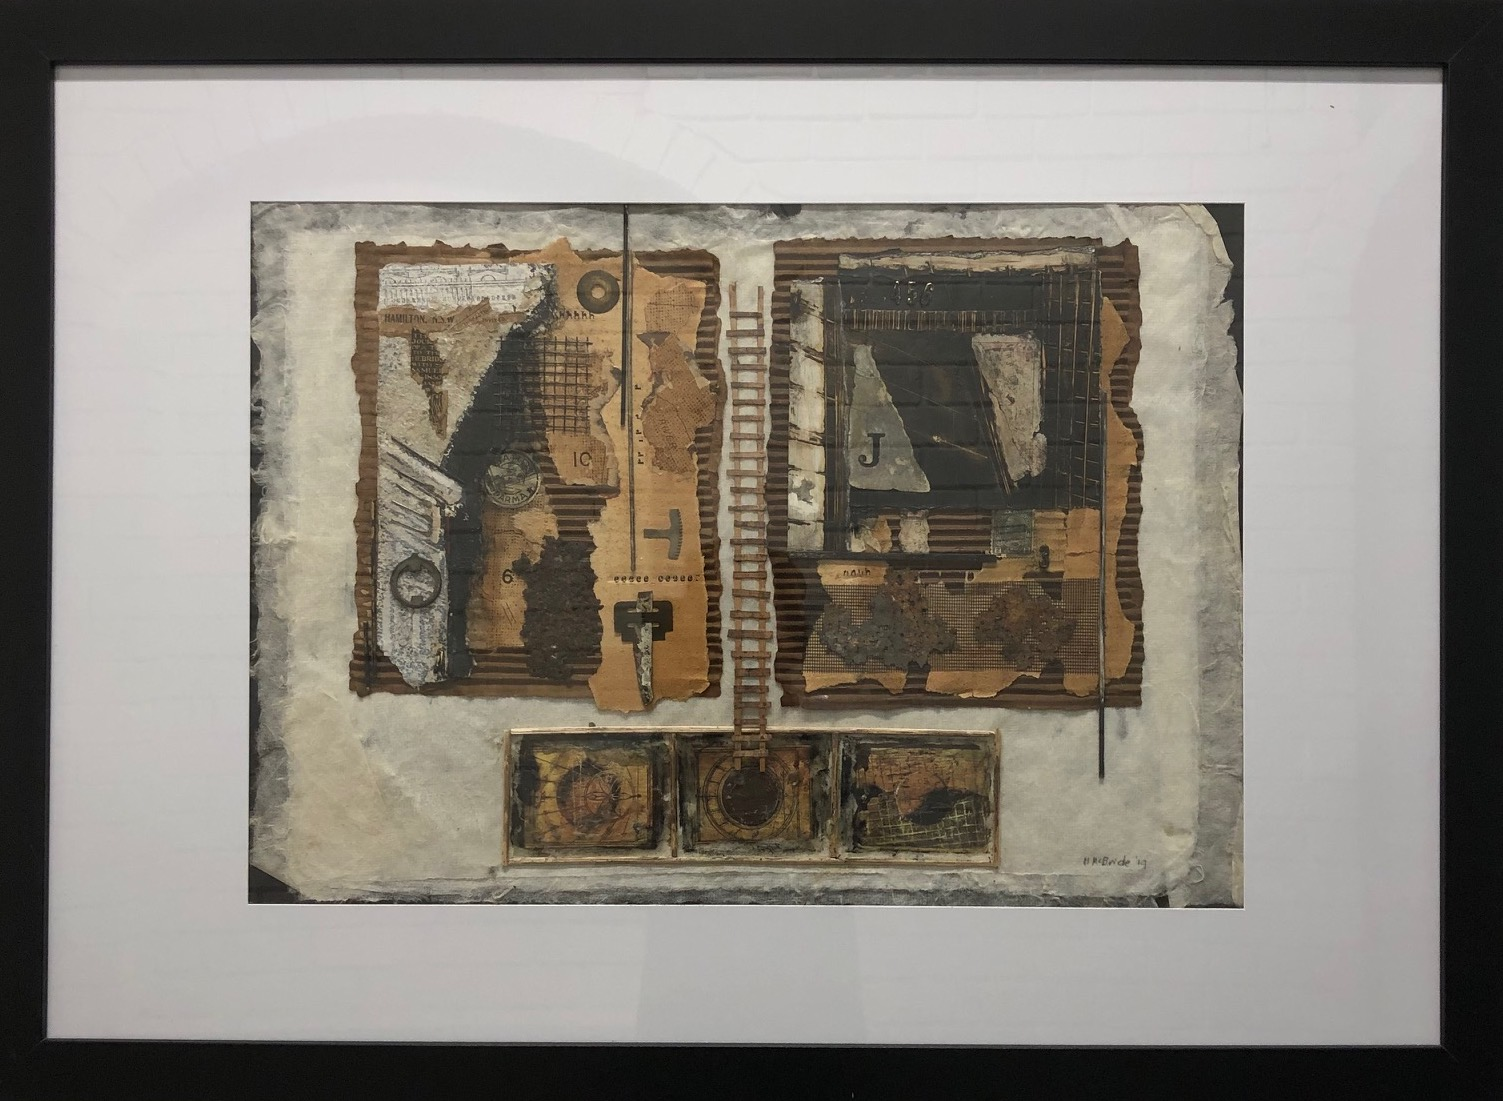 Margaret McBride Journeys without wings 2019 collage and mixed media on mulberry paper 60 x 85cm frame size $300.00